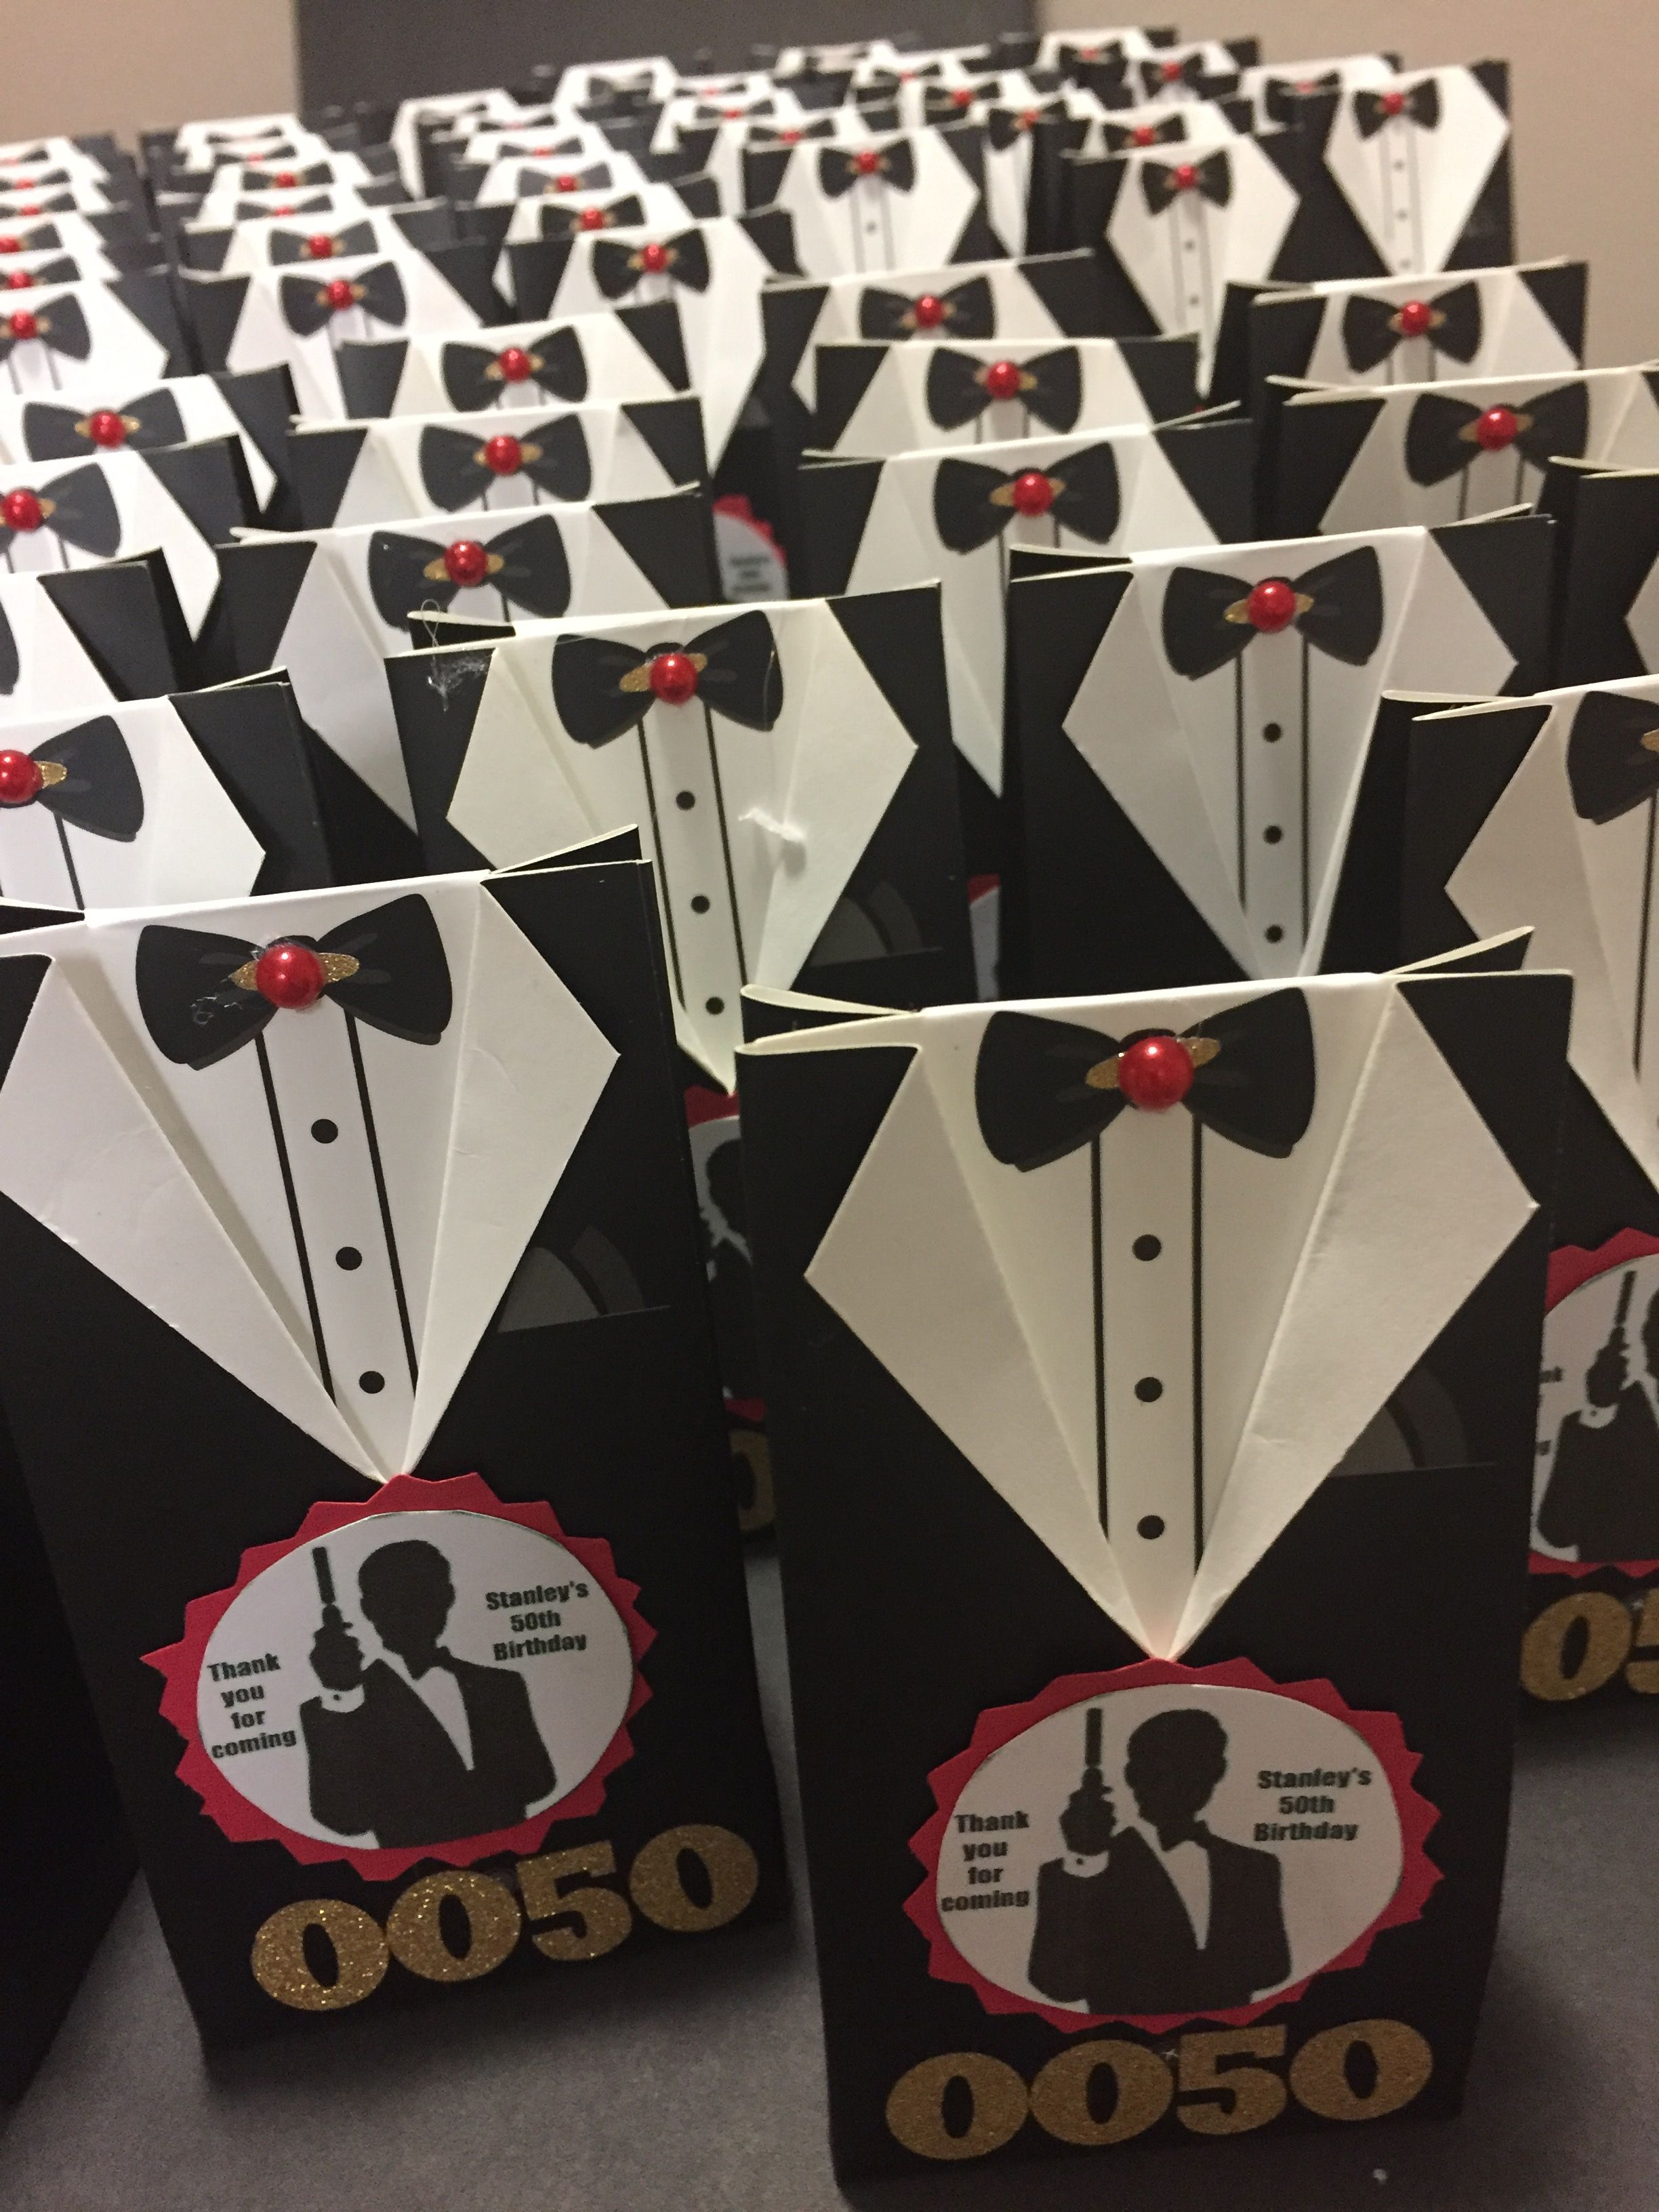 James Bond Party Favors Unique Birthday Party Ideas And Themes